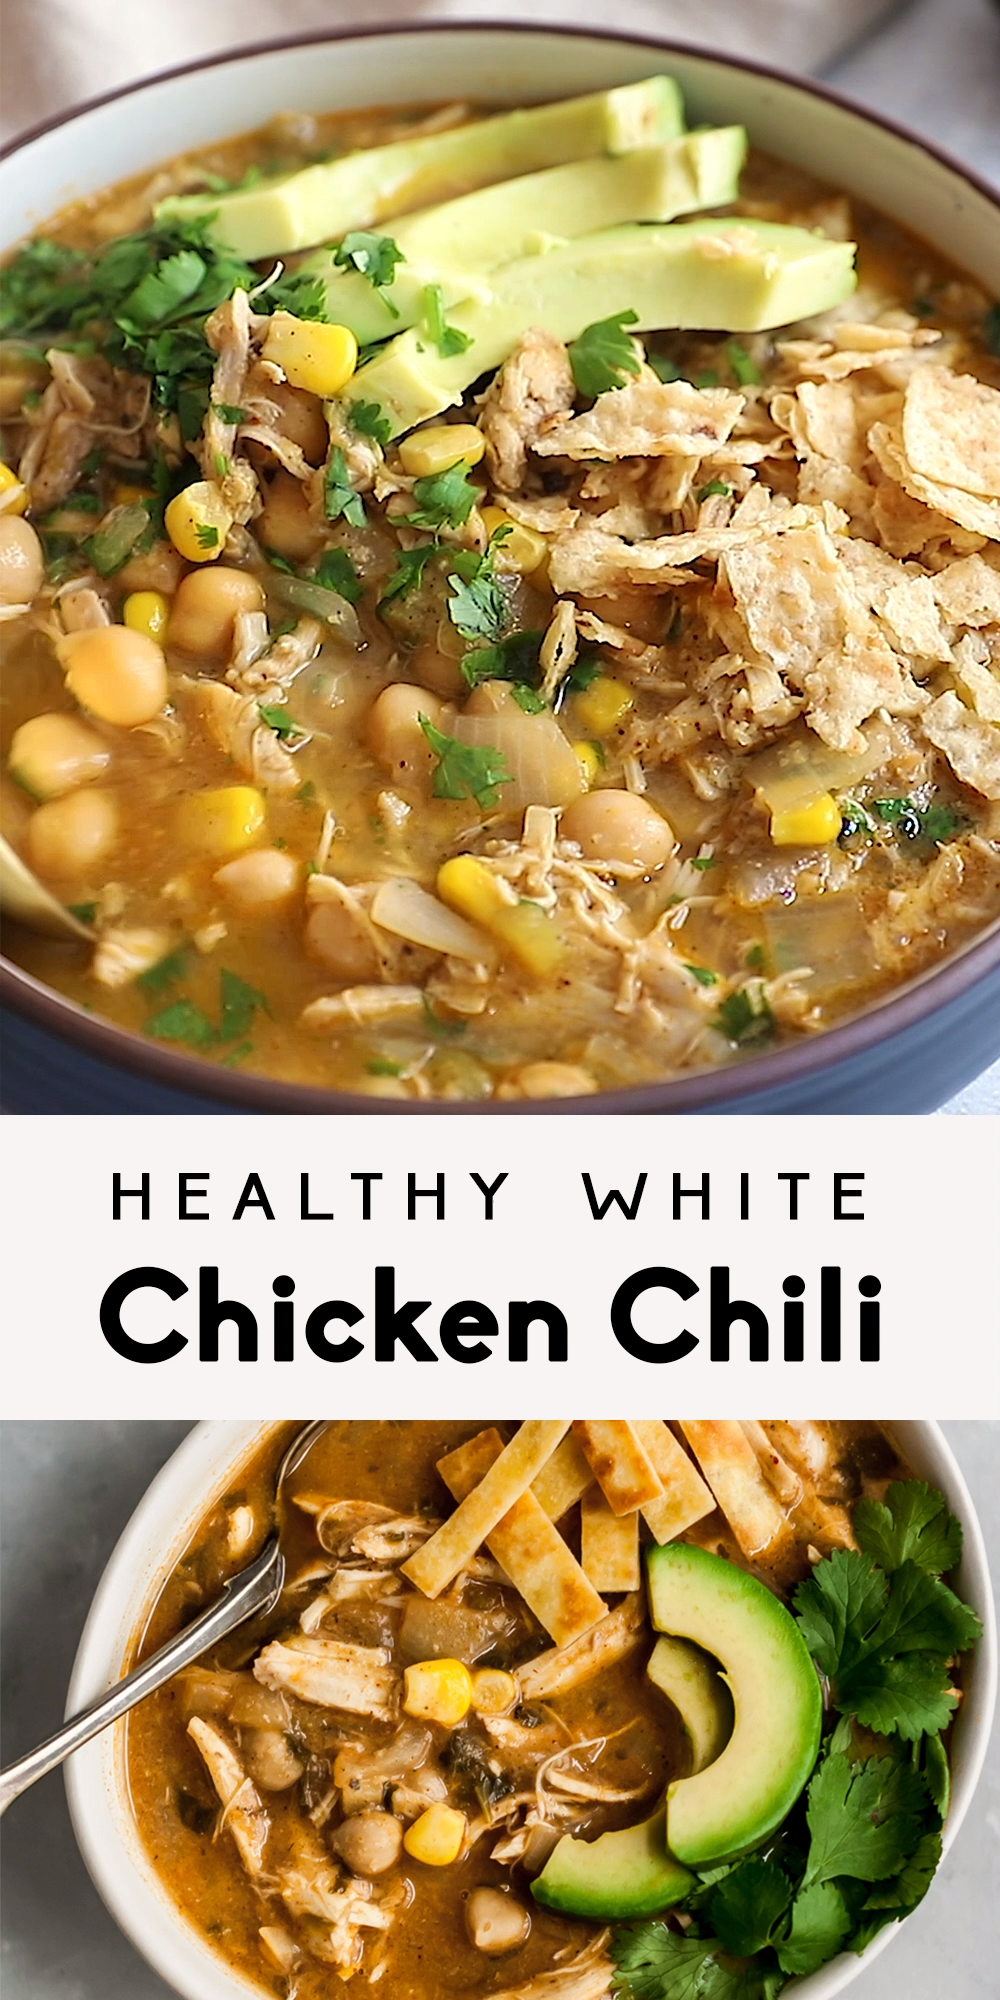 Healthy Delicious White Chicken Chili